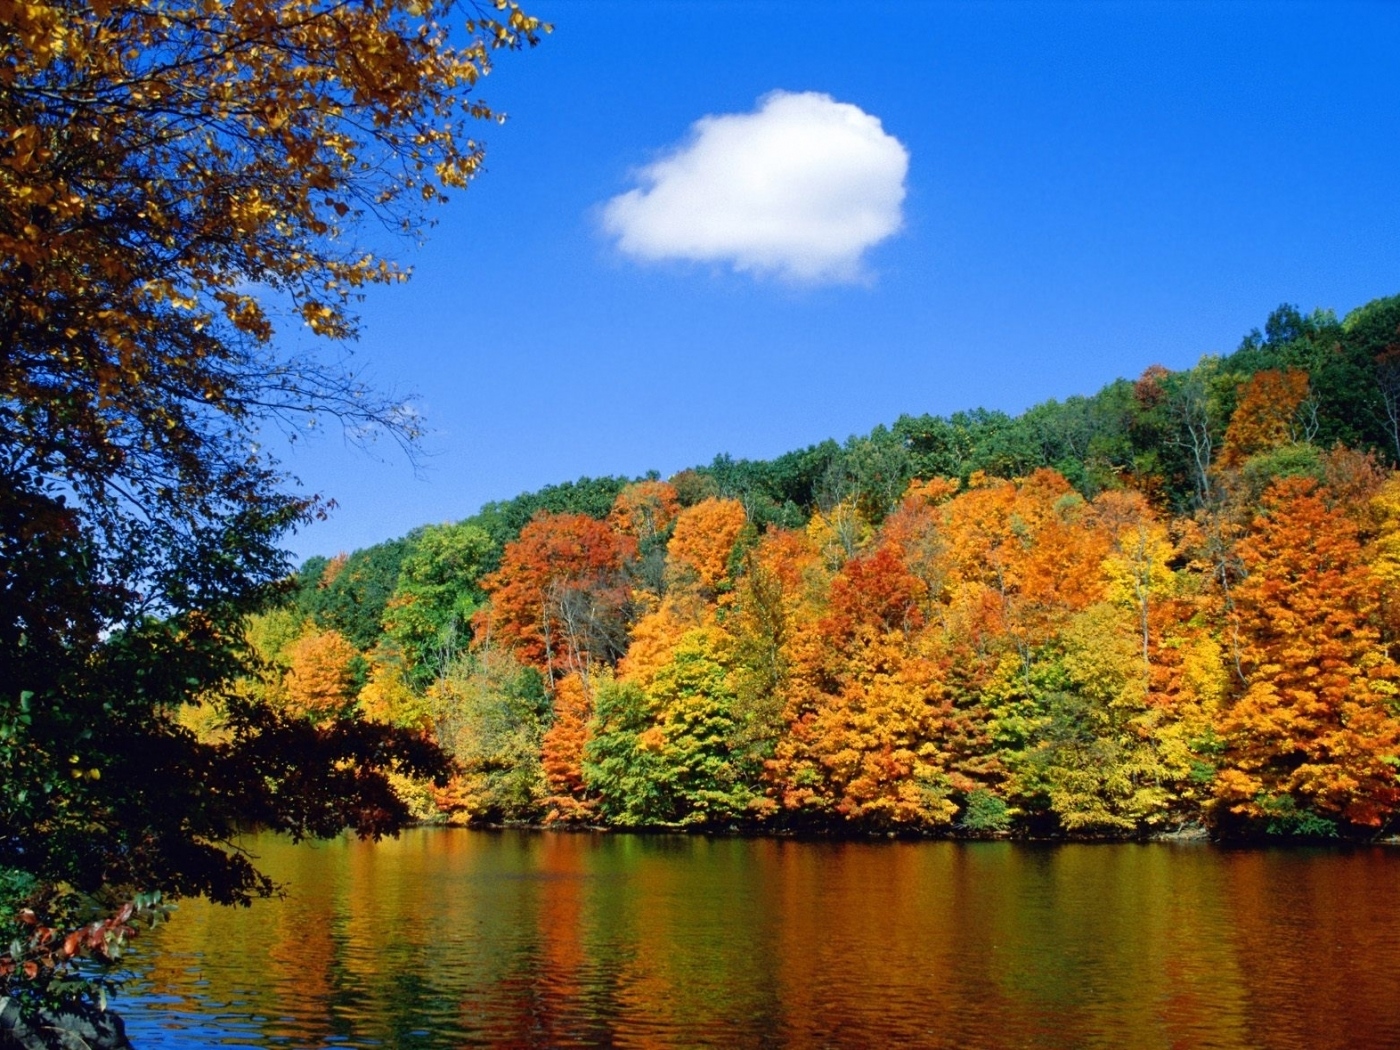 31572 download wallpaper Landscape, Rivers, Autumn screensavers and pictures for free